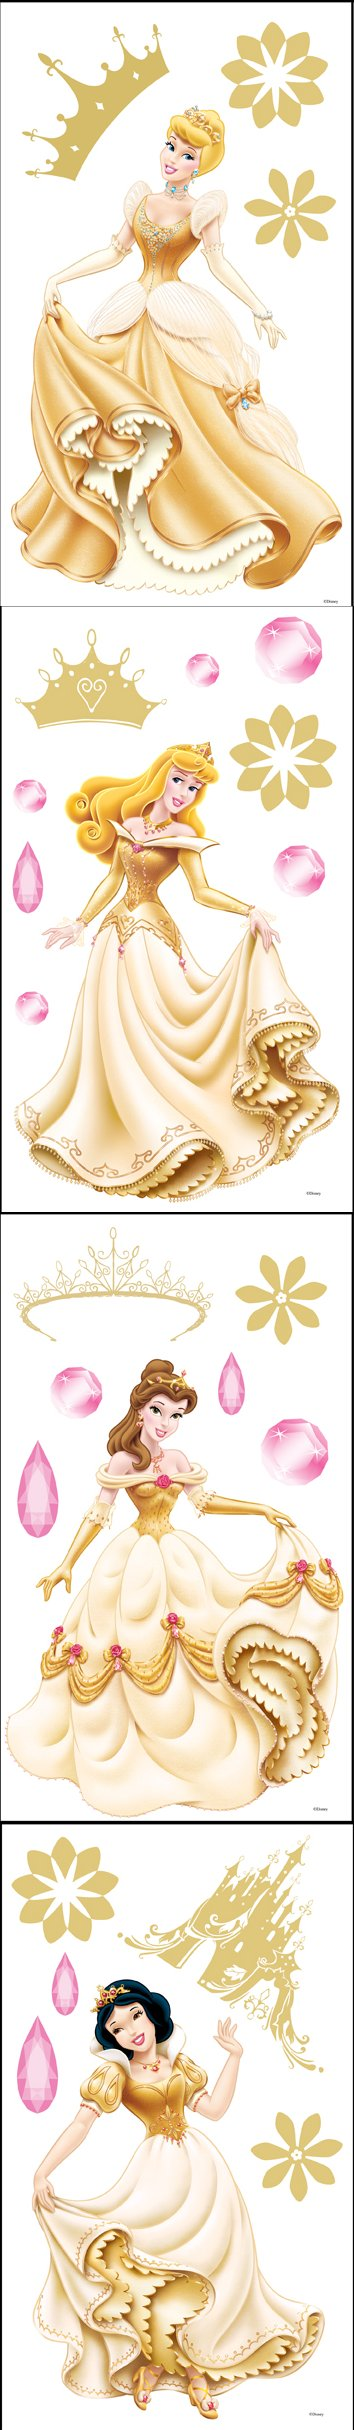 Disney Enchanted Princess Room Appliques - Wall Sticker Outlet